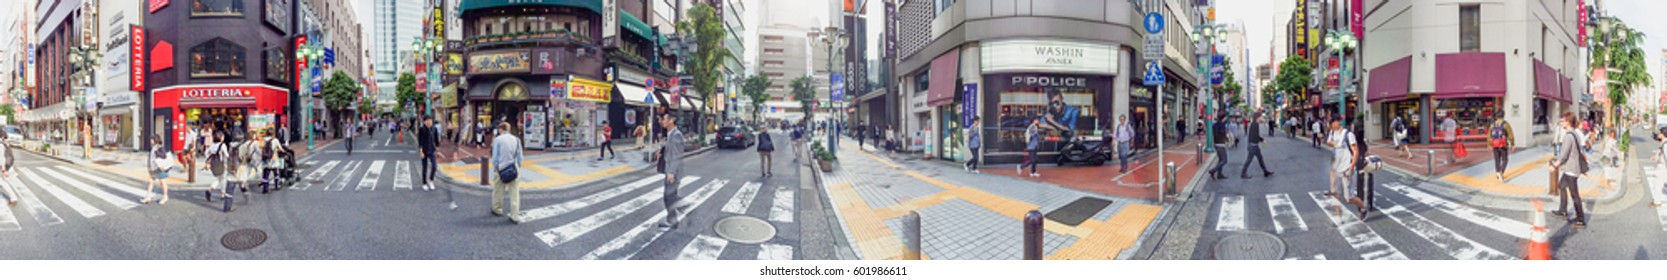 TOKYO - MAY 19, 2016: Tourists in Shinjuku. Tokyo attracts 5 million foreign visitors each year.